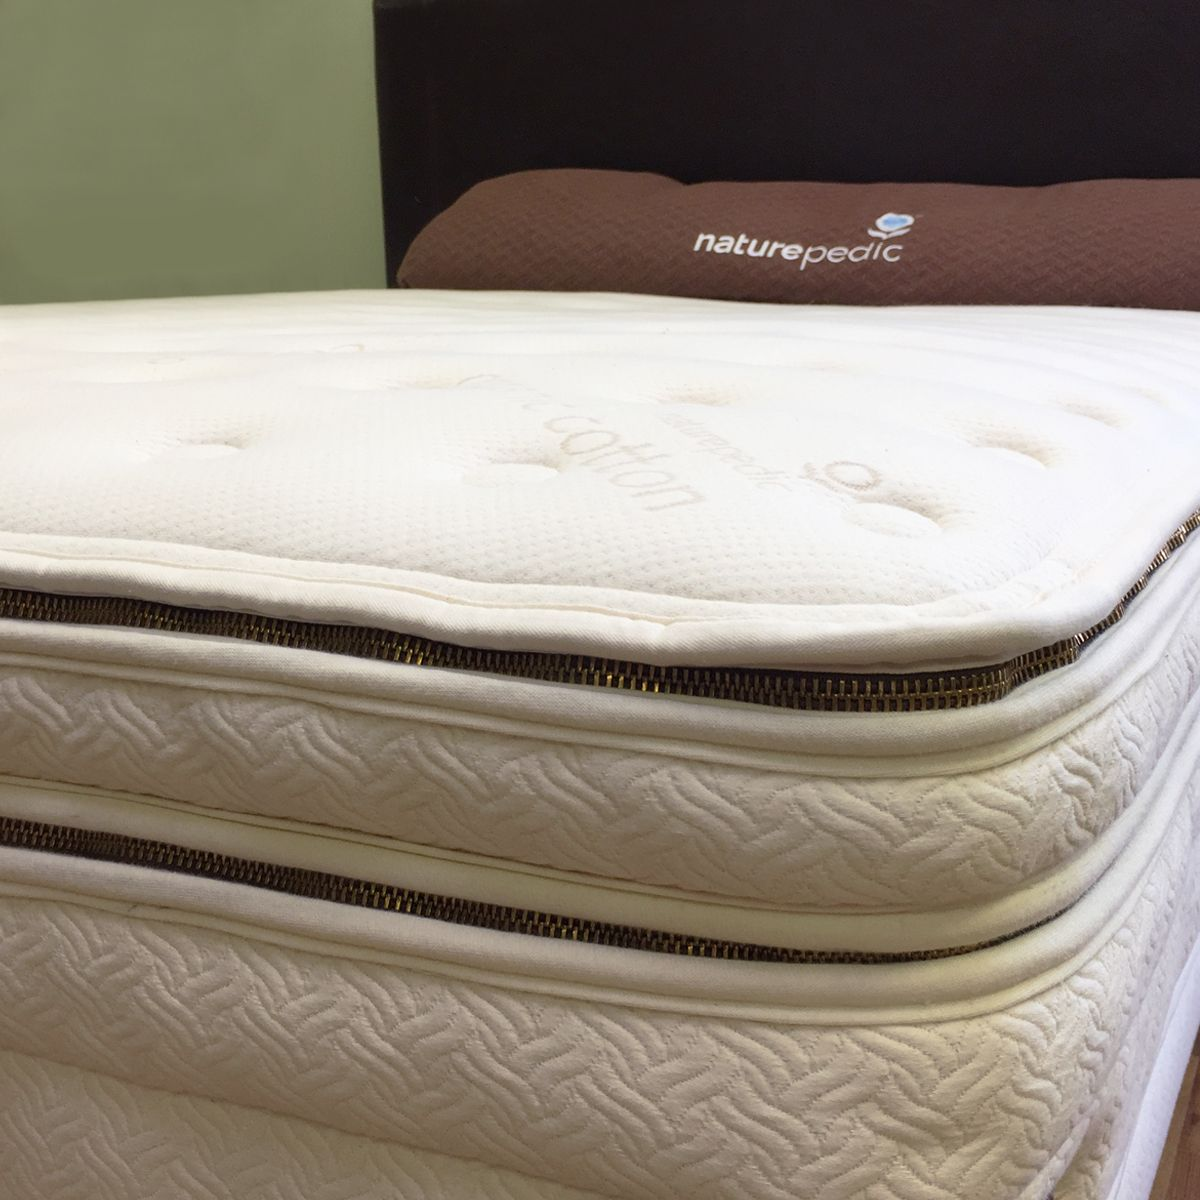 Sleep Is Precious And Important For Health Make Sure You Are Recharging With The Concerto Organic Luxury Mattress Mattress Luxury Mattresses Mattress Design